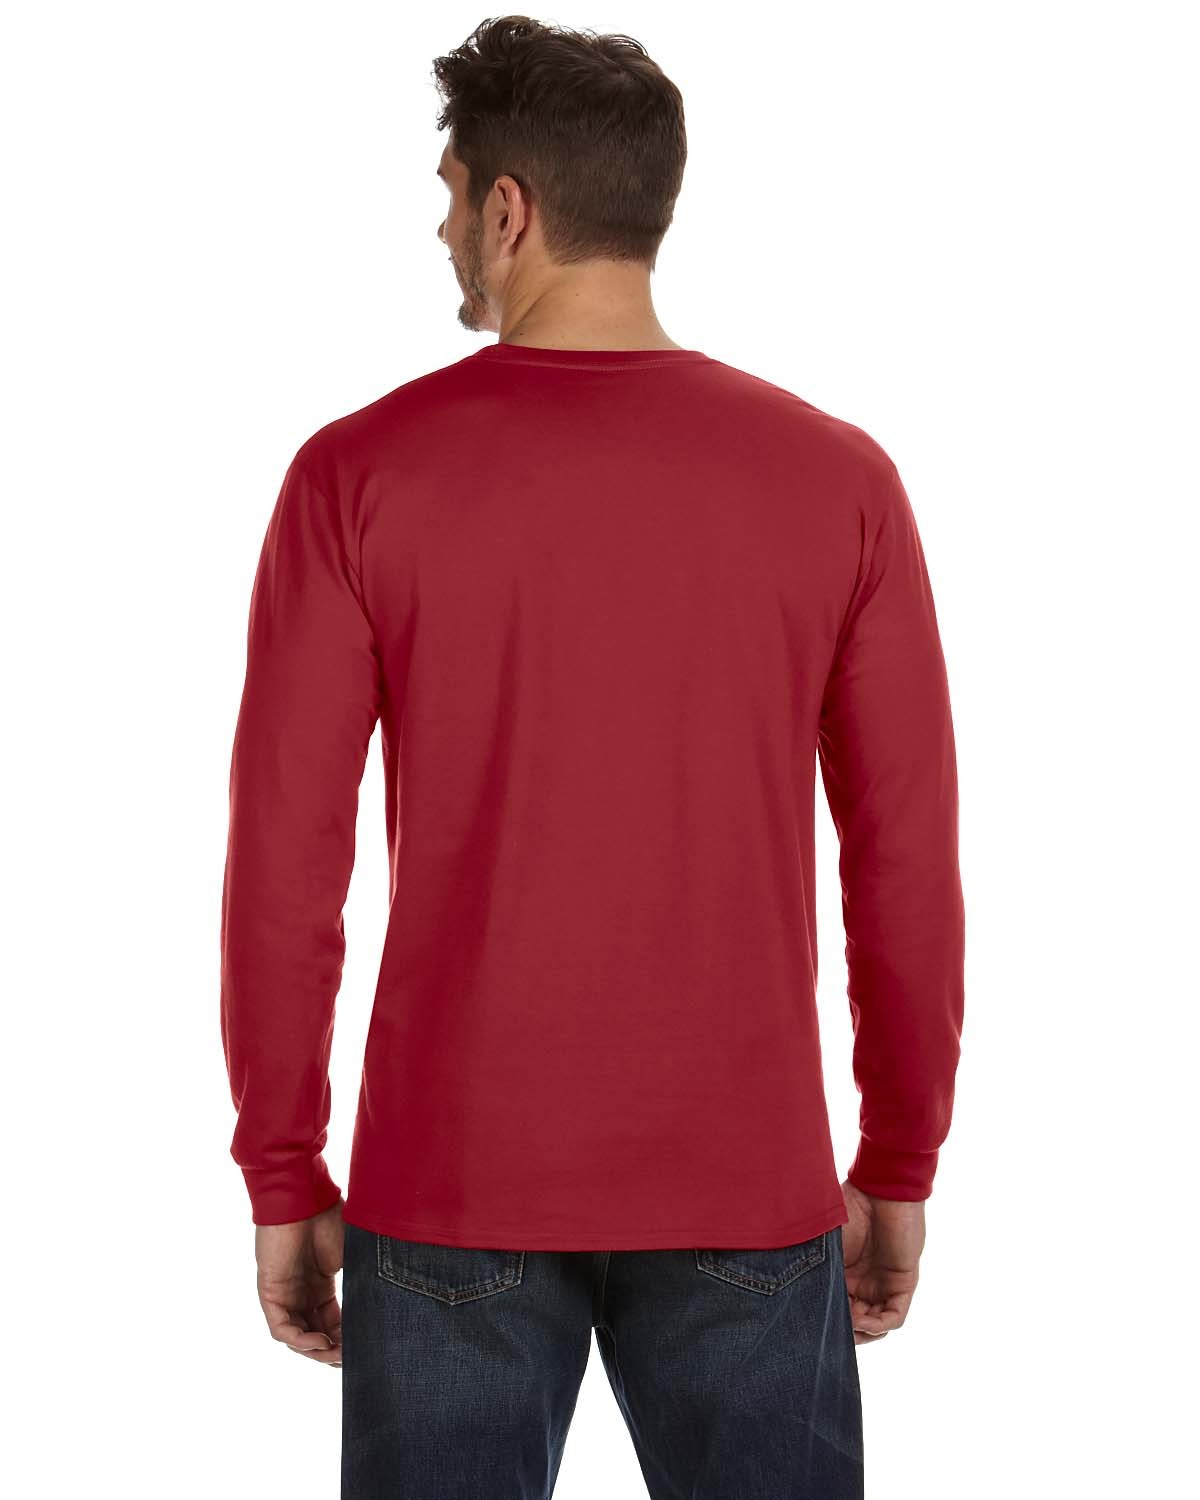 784AN Anvil INDEPENDENCE RED